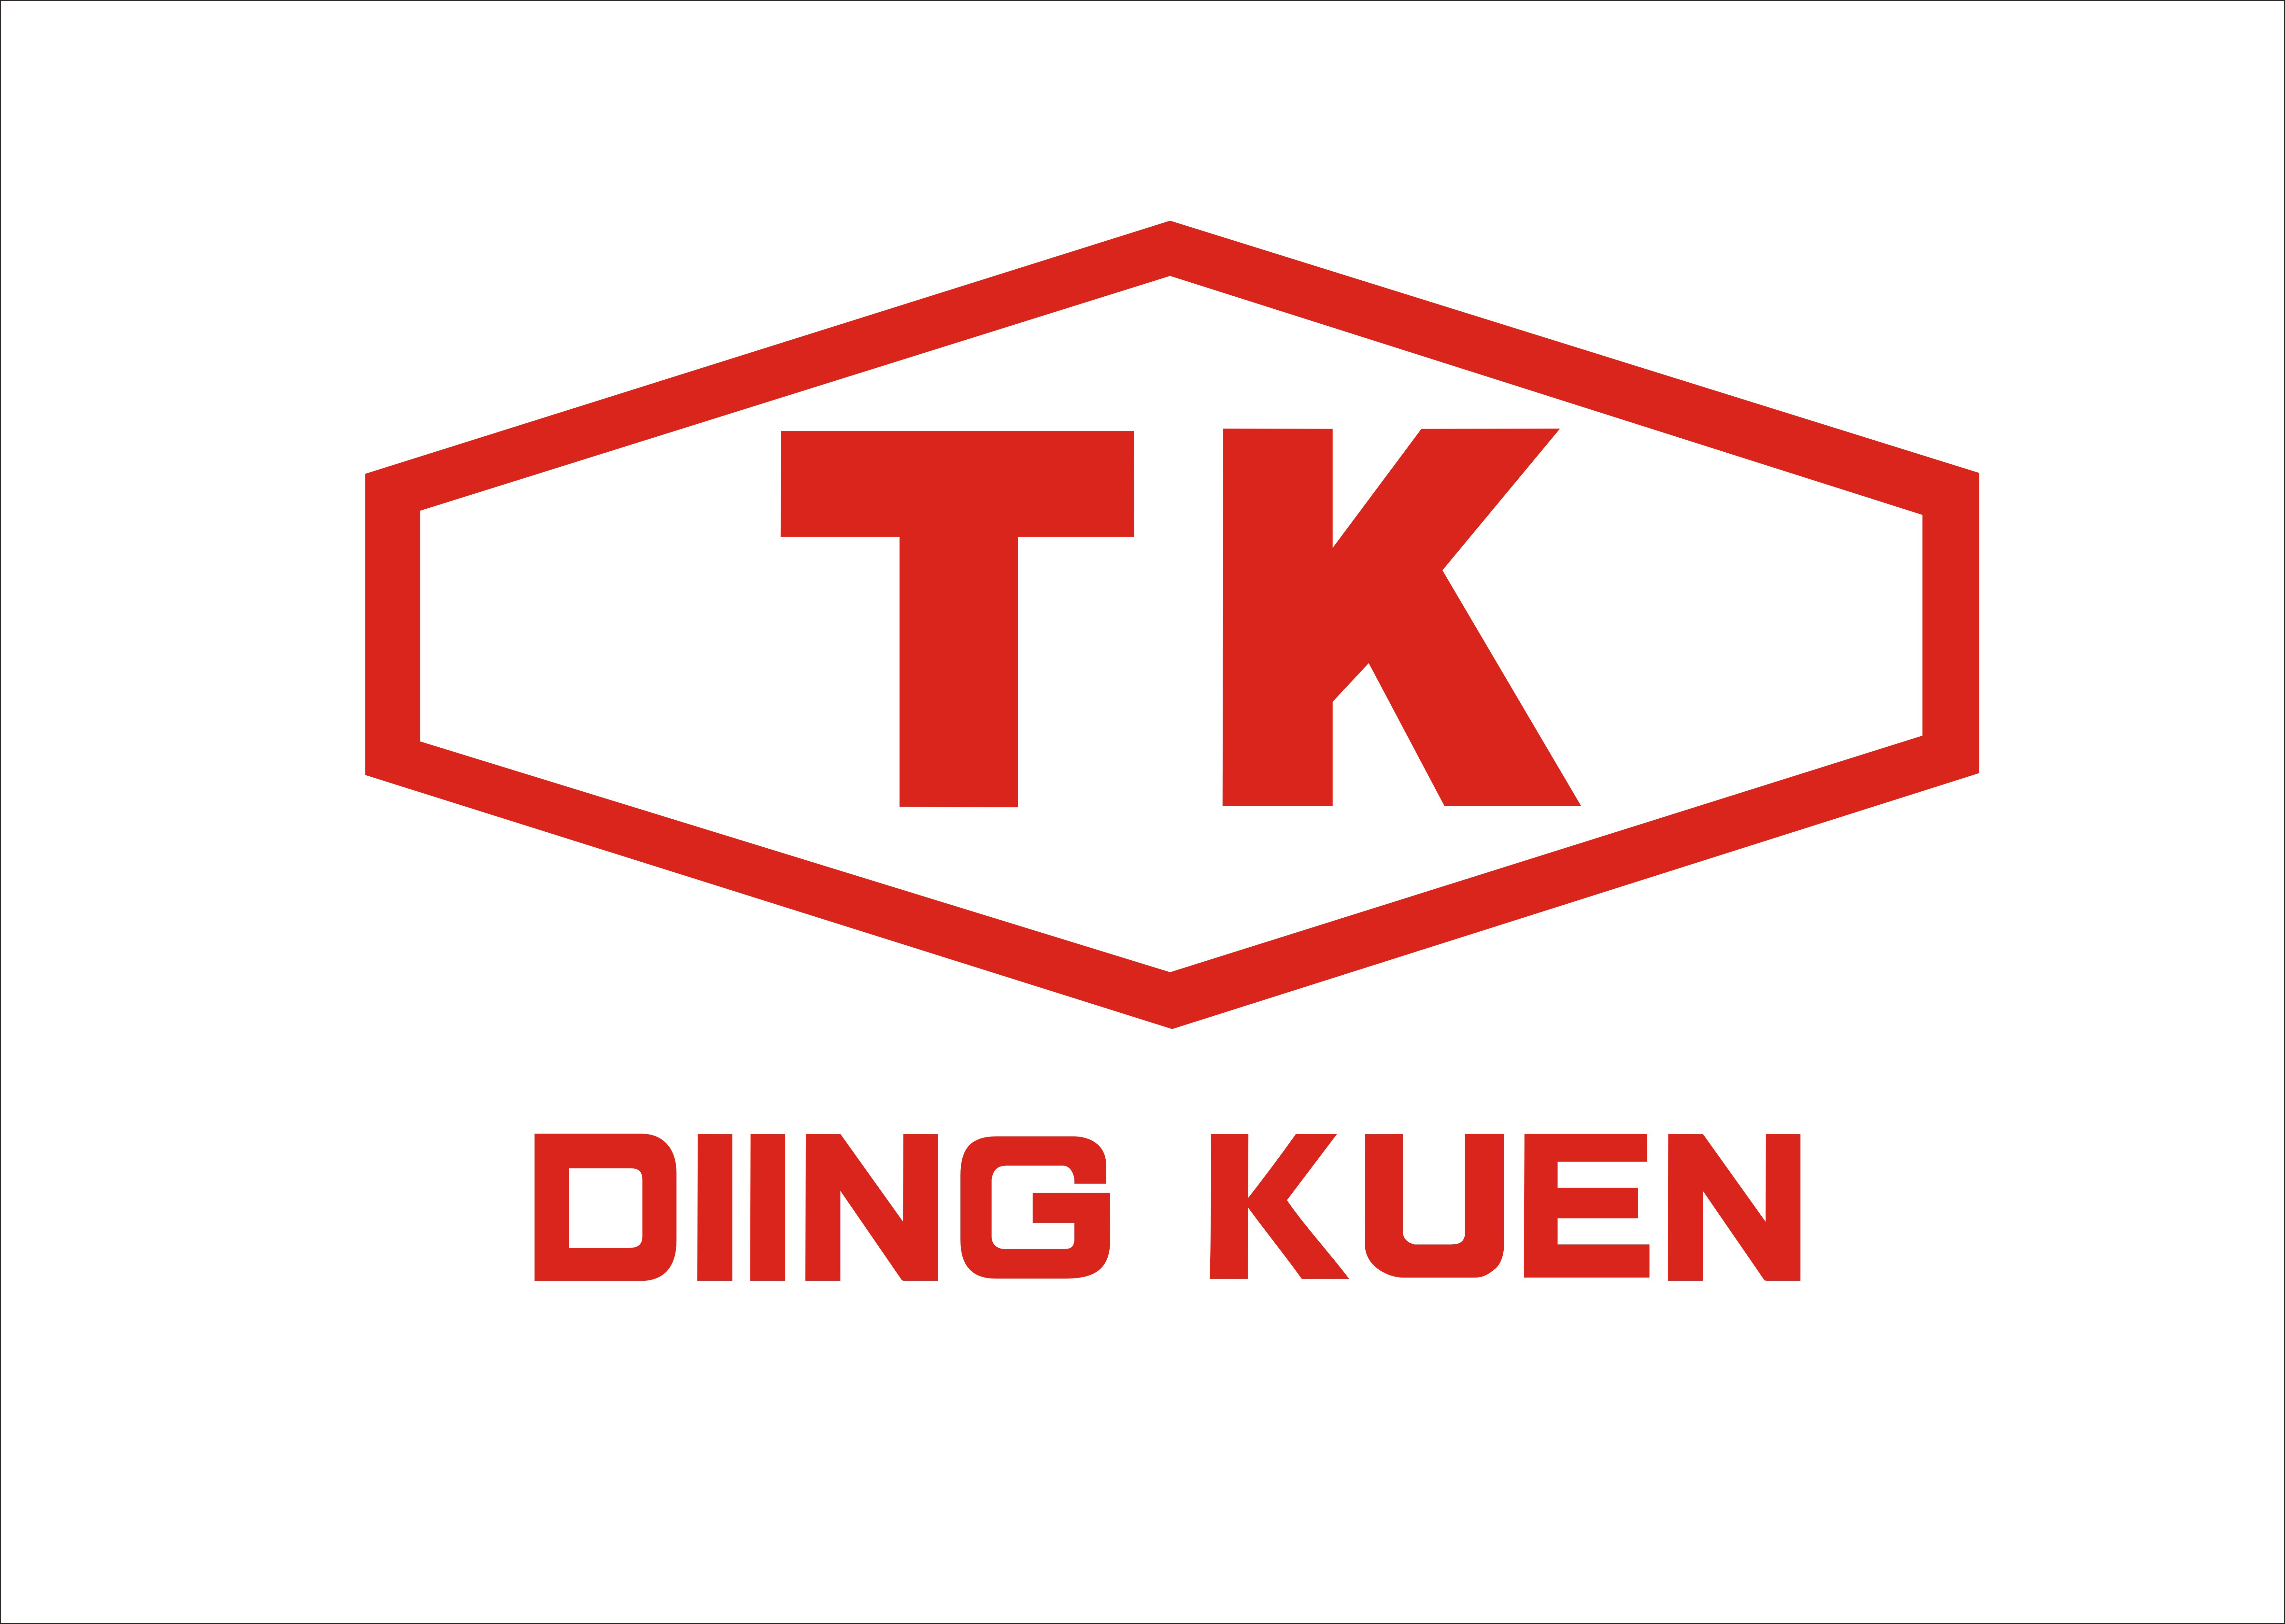 Diing Kuen Plastic Machinery Co., Ltd.